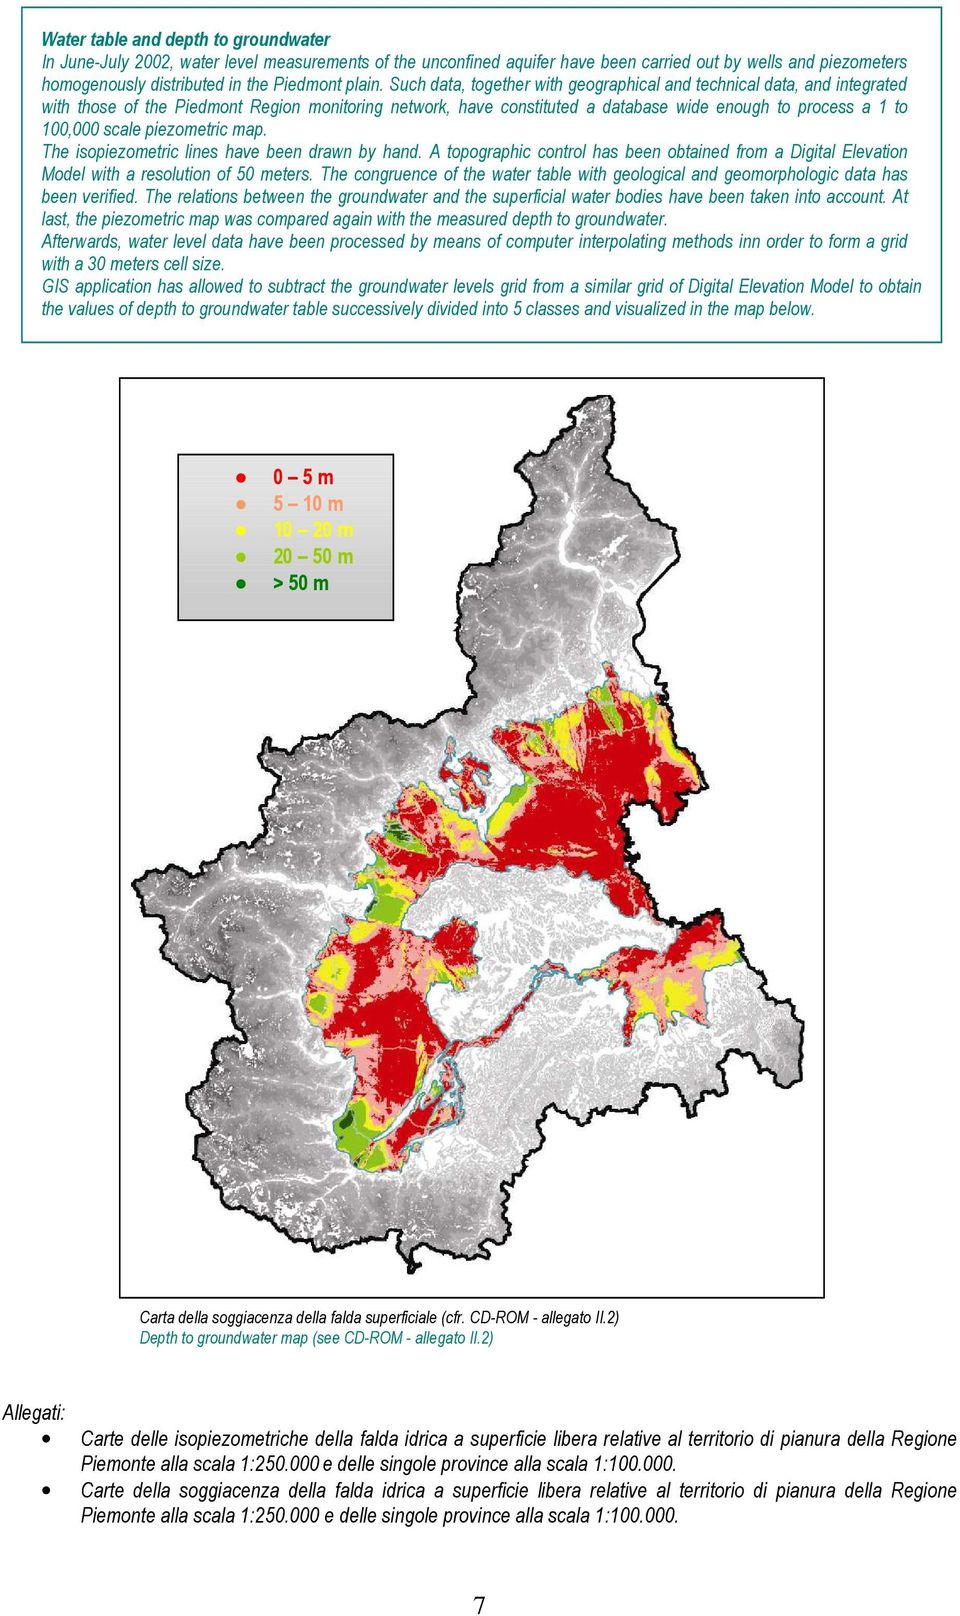 Such data, together with geographical and technical data, and integrated with those of the Piedmont Region monitoring network, have constituted a database wide enough to process a 1 to 100,000 scale